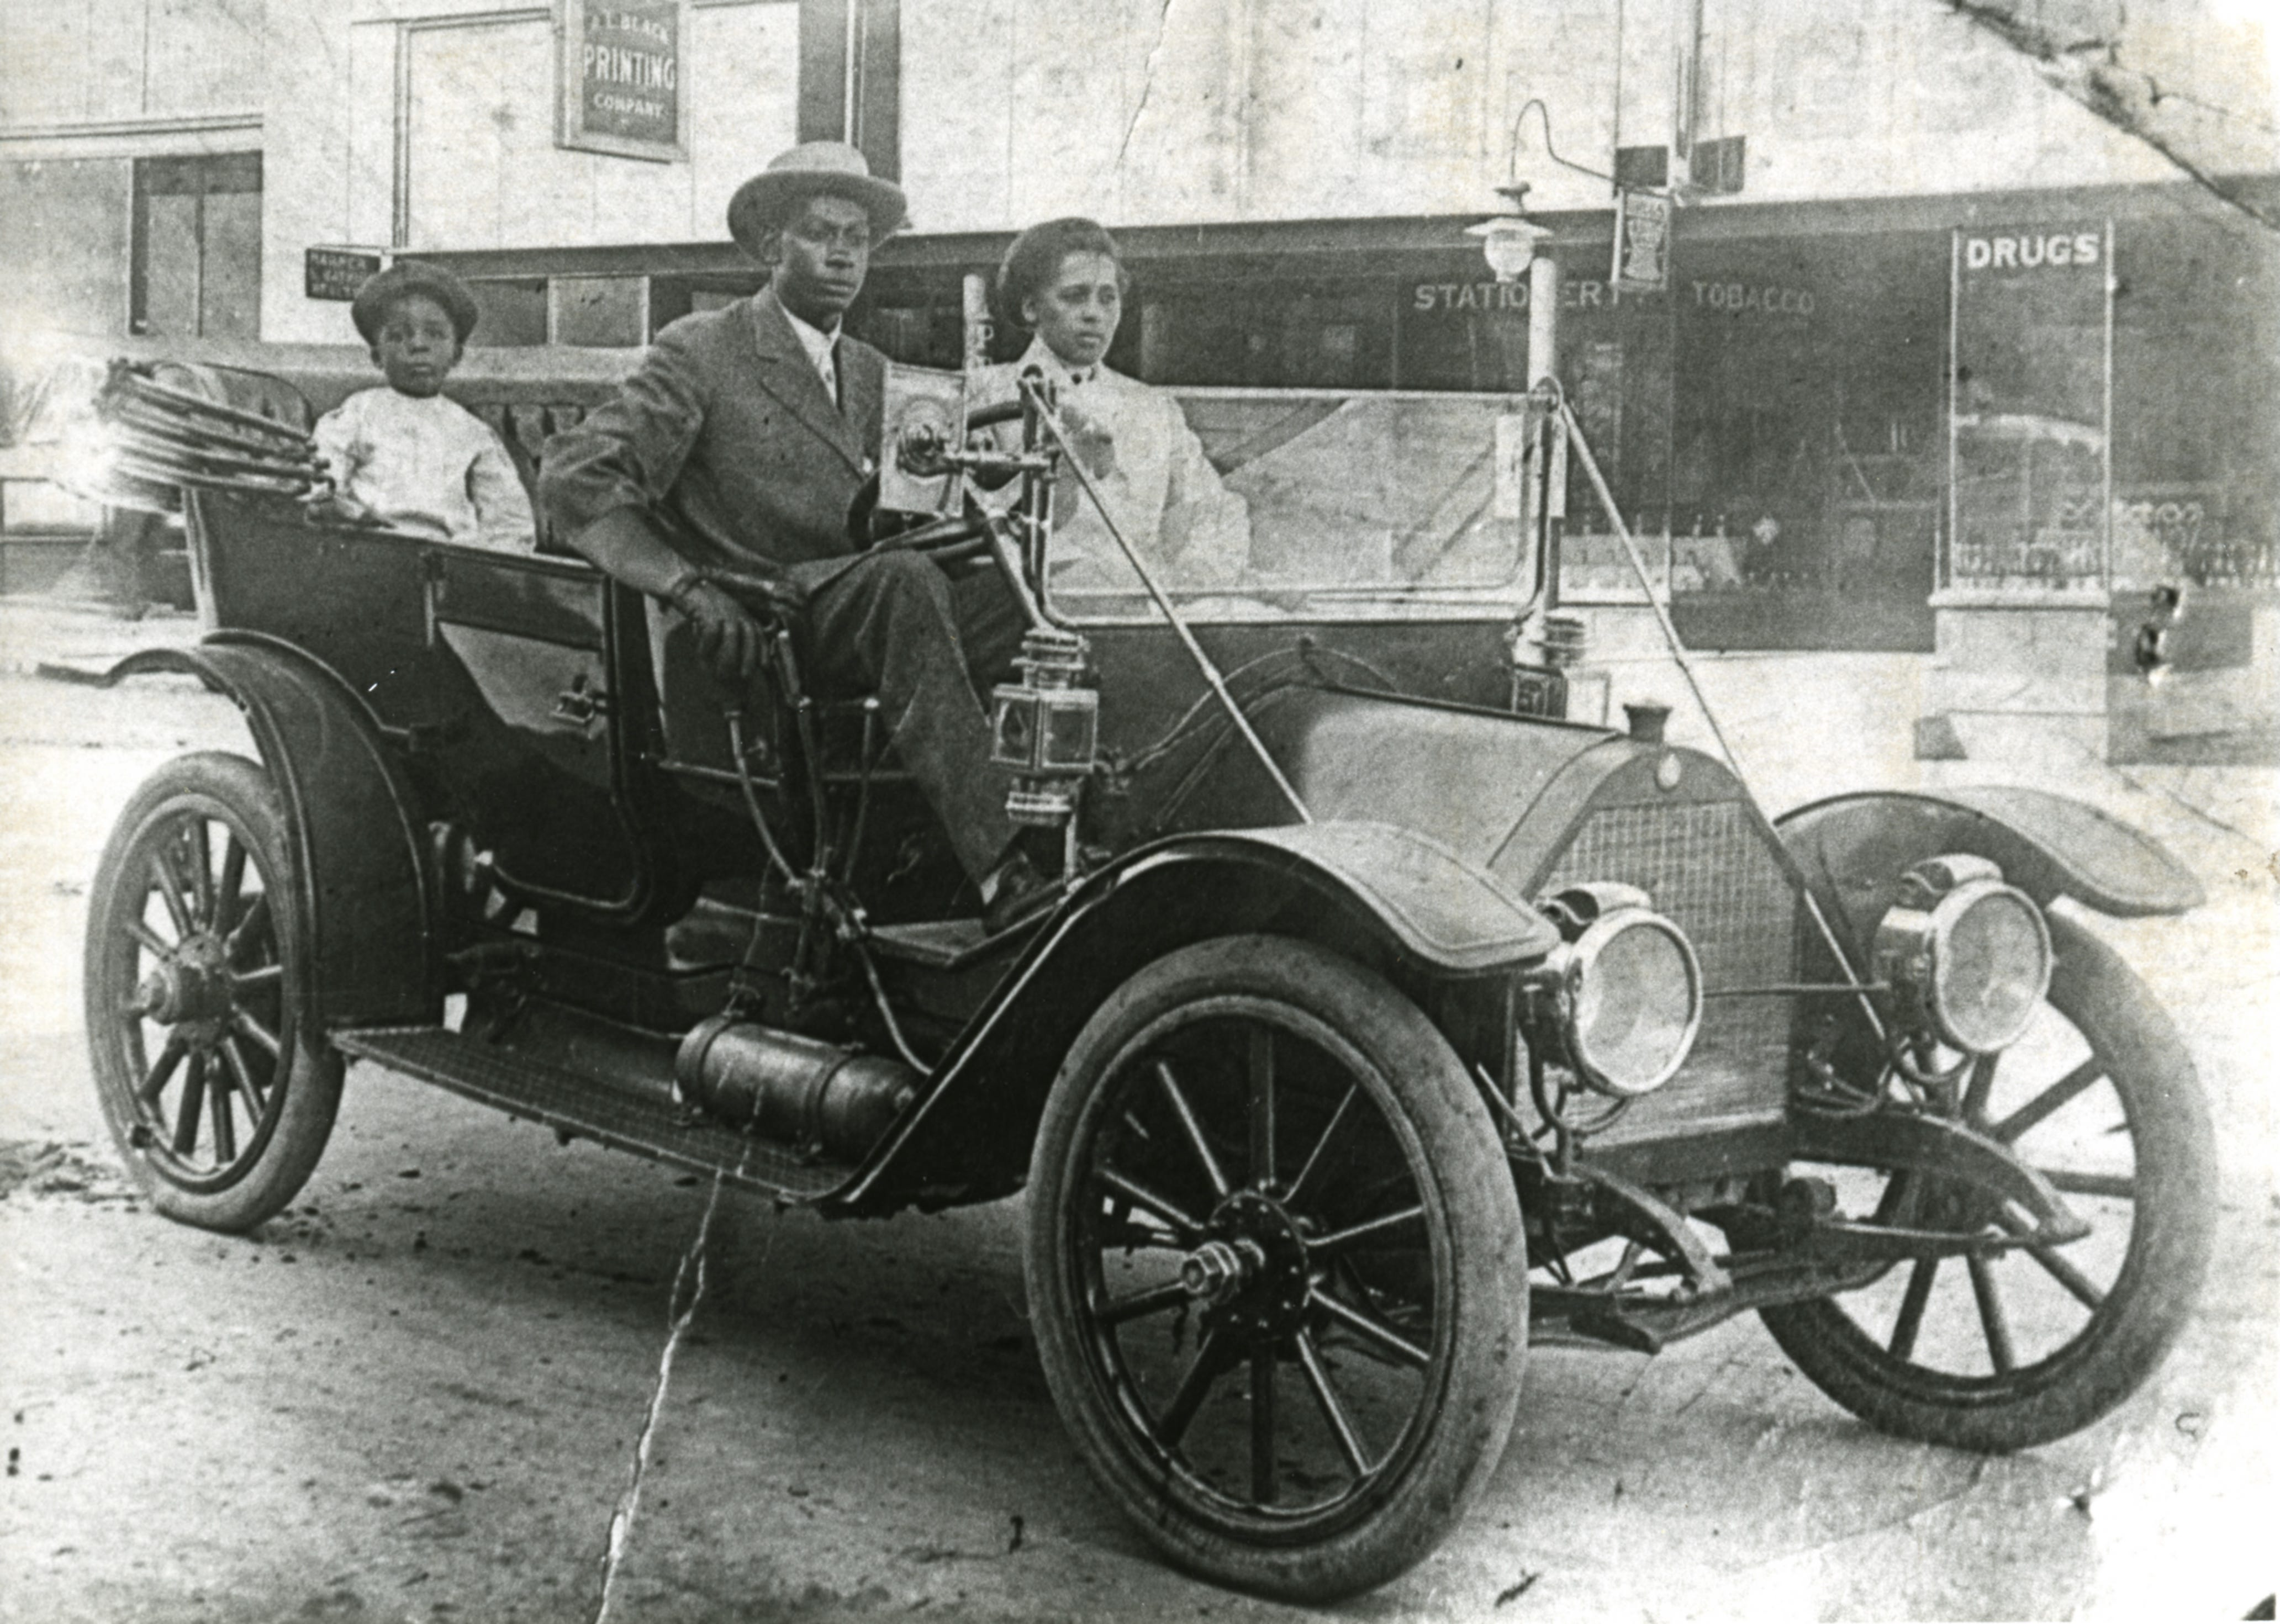 John Wesley Williams and wife, Loula Cotten Williams, and their son, William Danforth Williams, sitting in a 1911 Norwalk automobile. A sign advertising A.L. Black Printing Co., located at 114 S Boston Ave., Tulsa, is visible in the background. John was an engineer for Thompson Ice Cream Co. Loula was a teacher in Fisher. The Williams family owned the Dreamland Theatre, which opened in 1914 at 129 N Greenwood Ave., and was destroyed in the 1921 Tulsa Race Massacre.